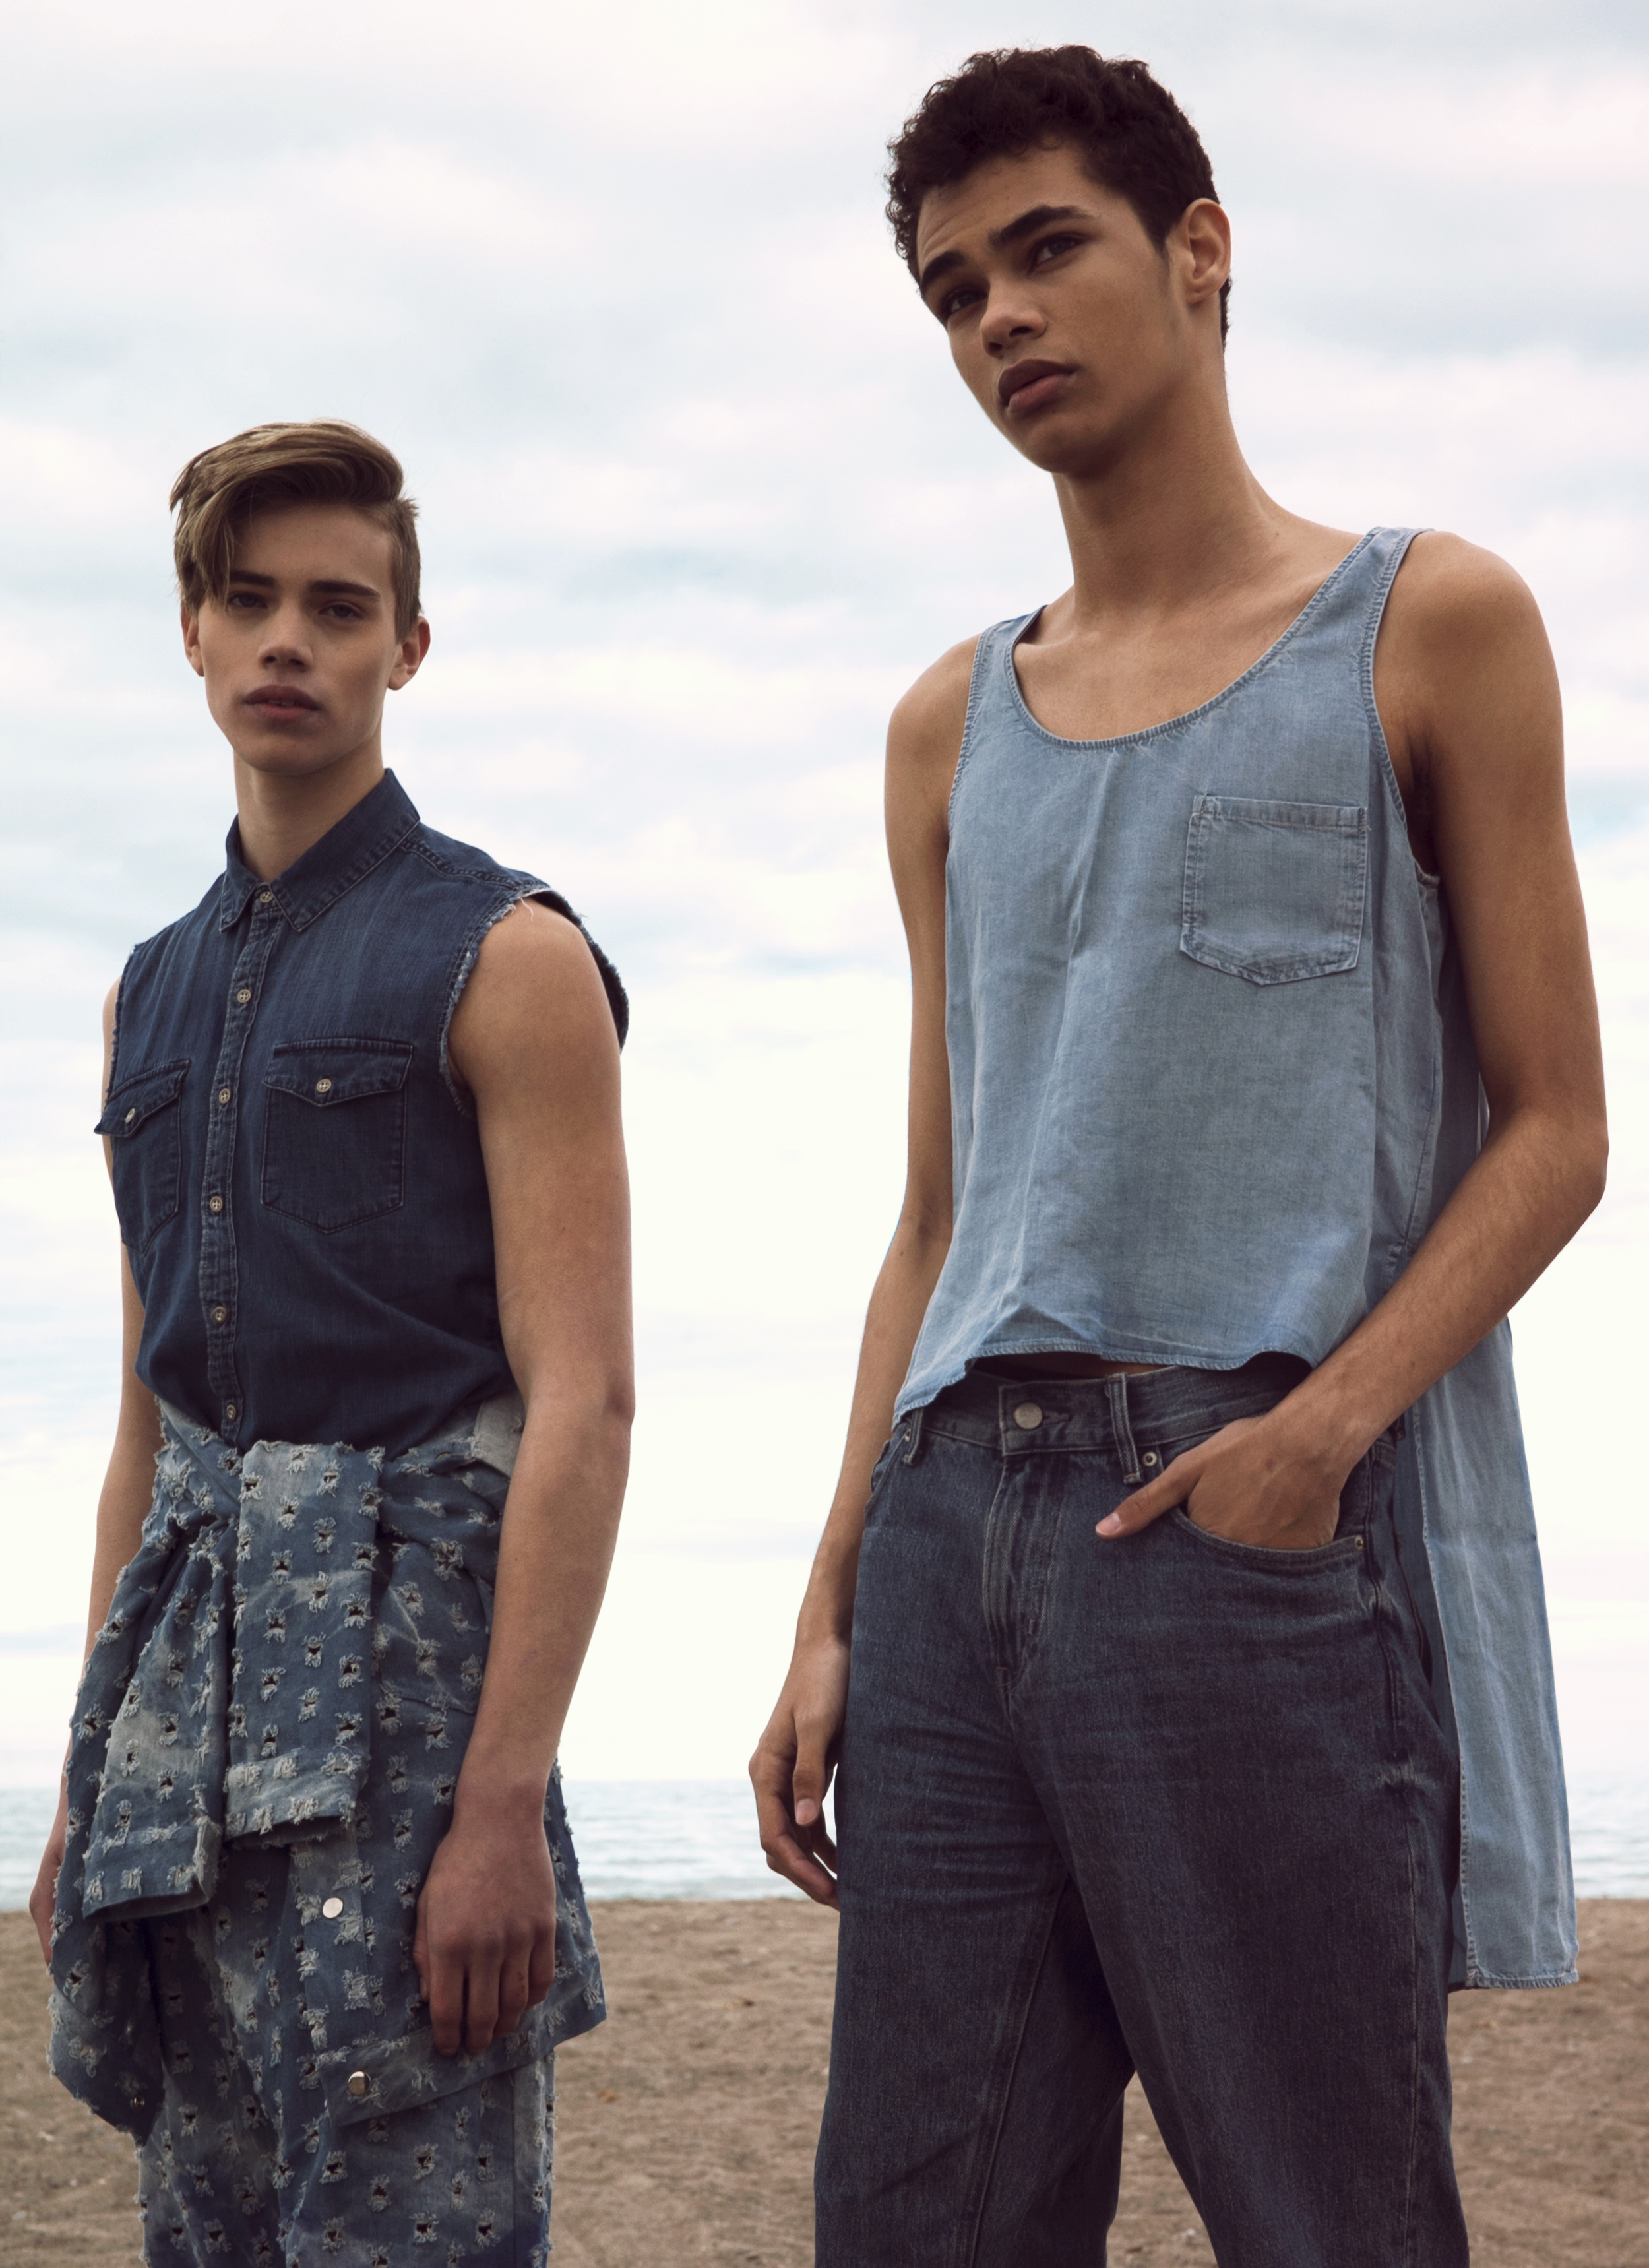 On Tannor: denim shirt DIESEL, denim jacket and trousers ANDREW COIMBRA  On Ty: denim tank DIESEL, jeans ACNE